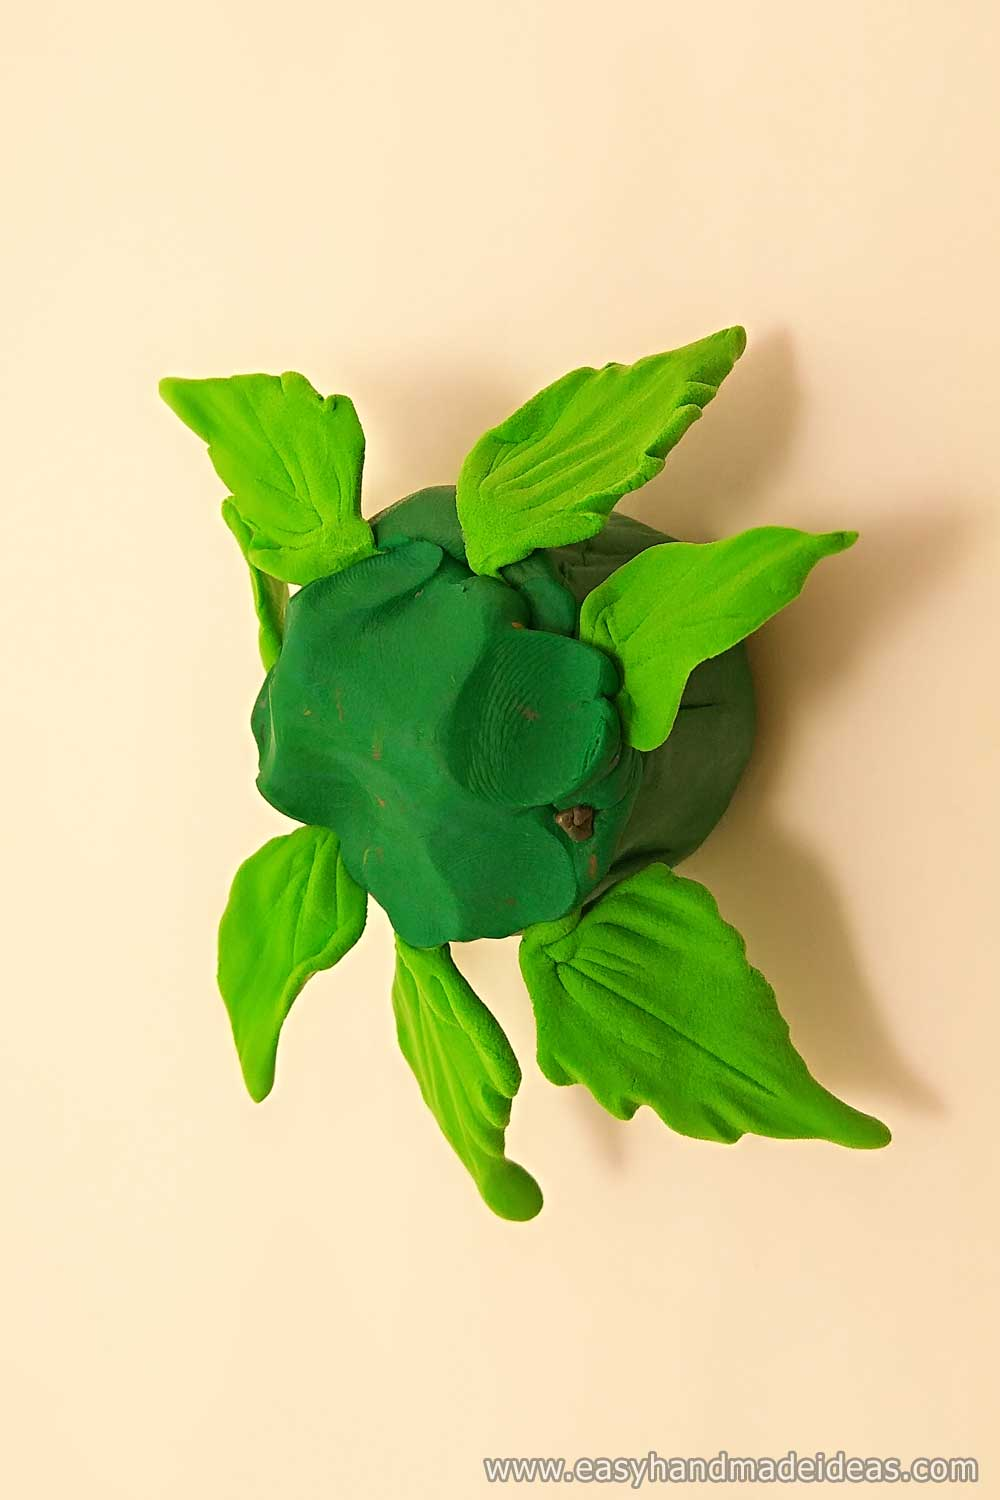 Leaves of Clay in a Flowerpot